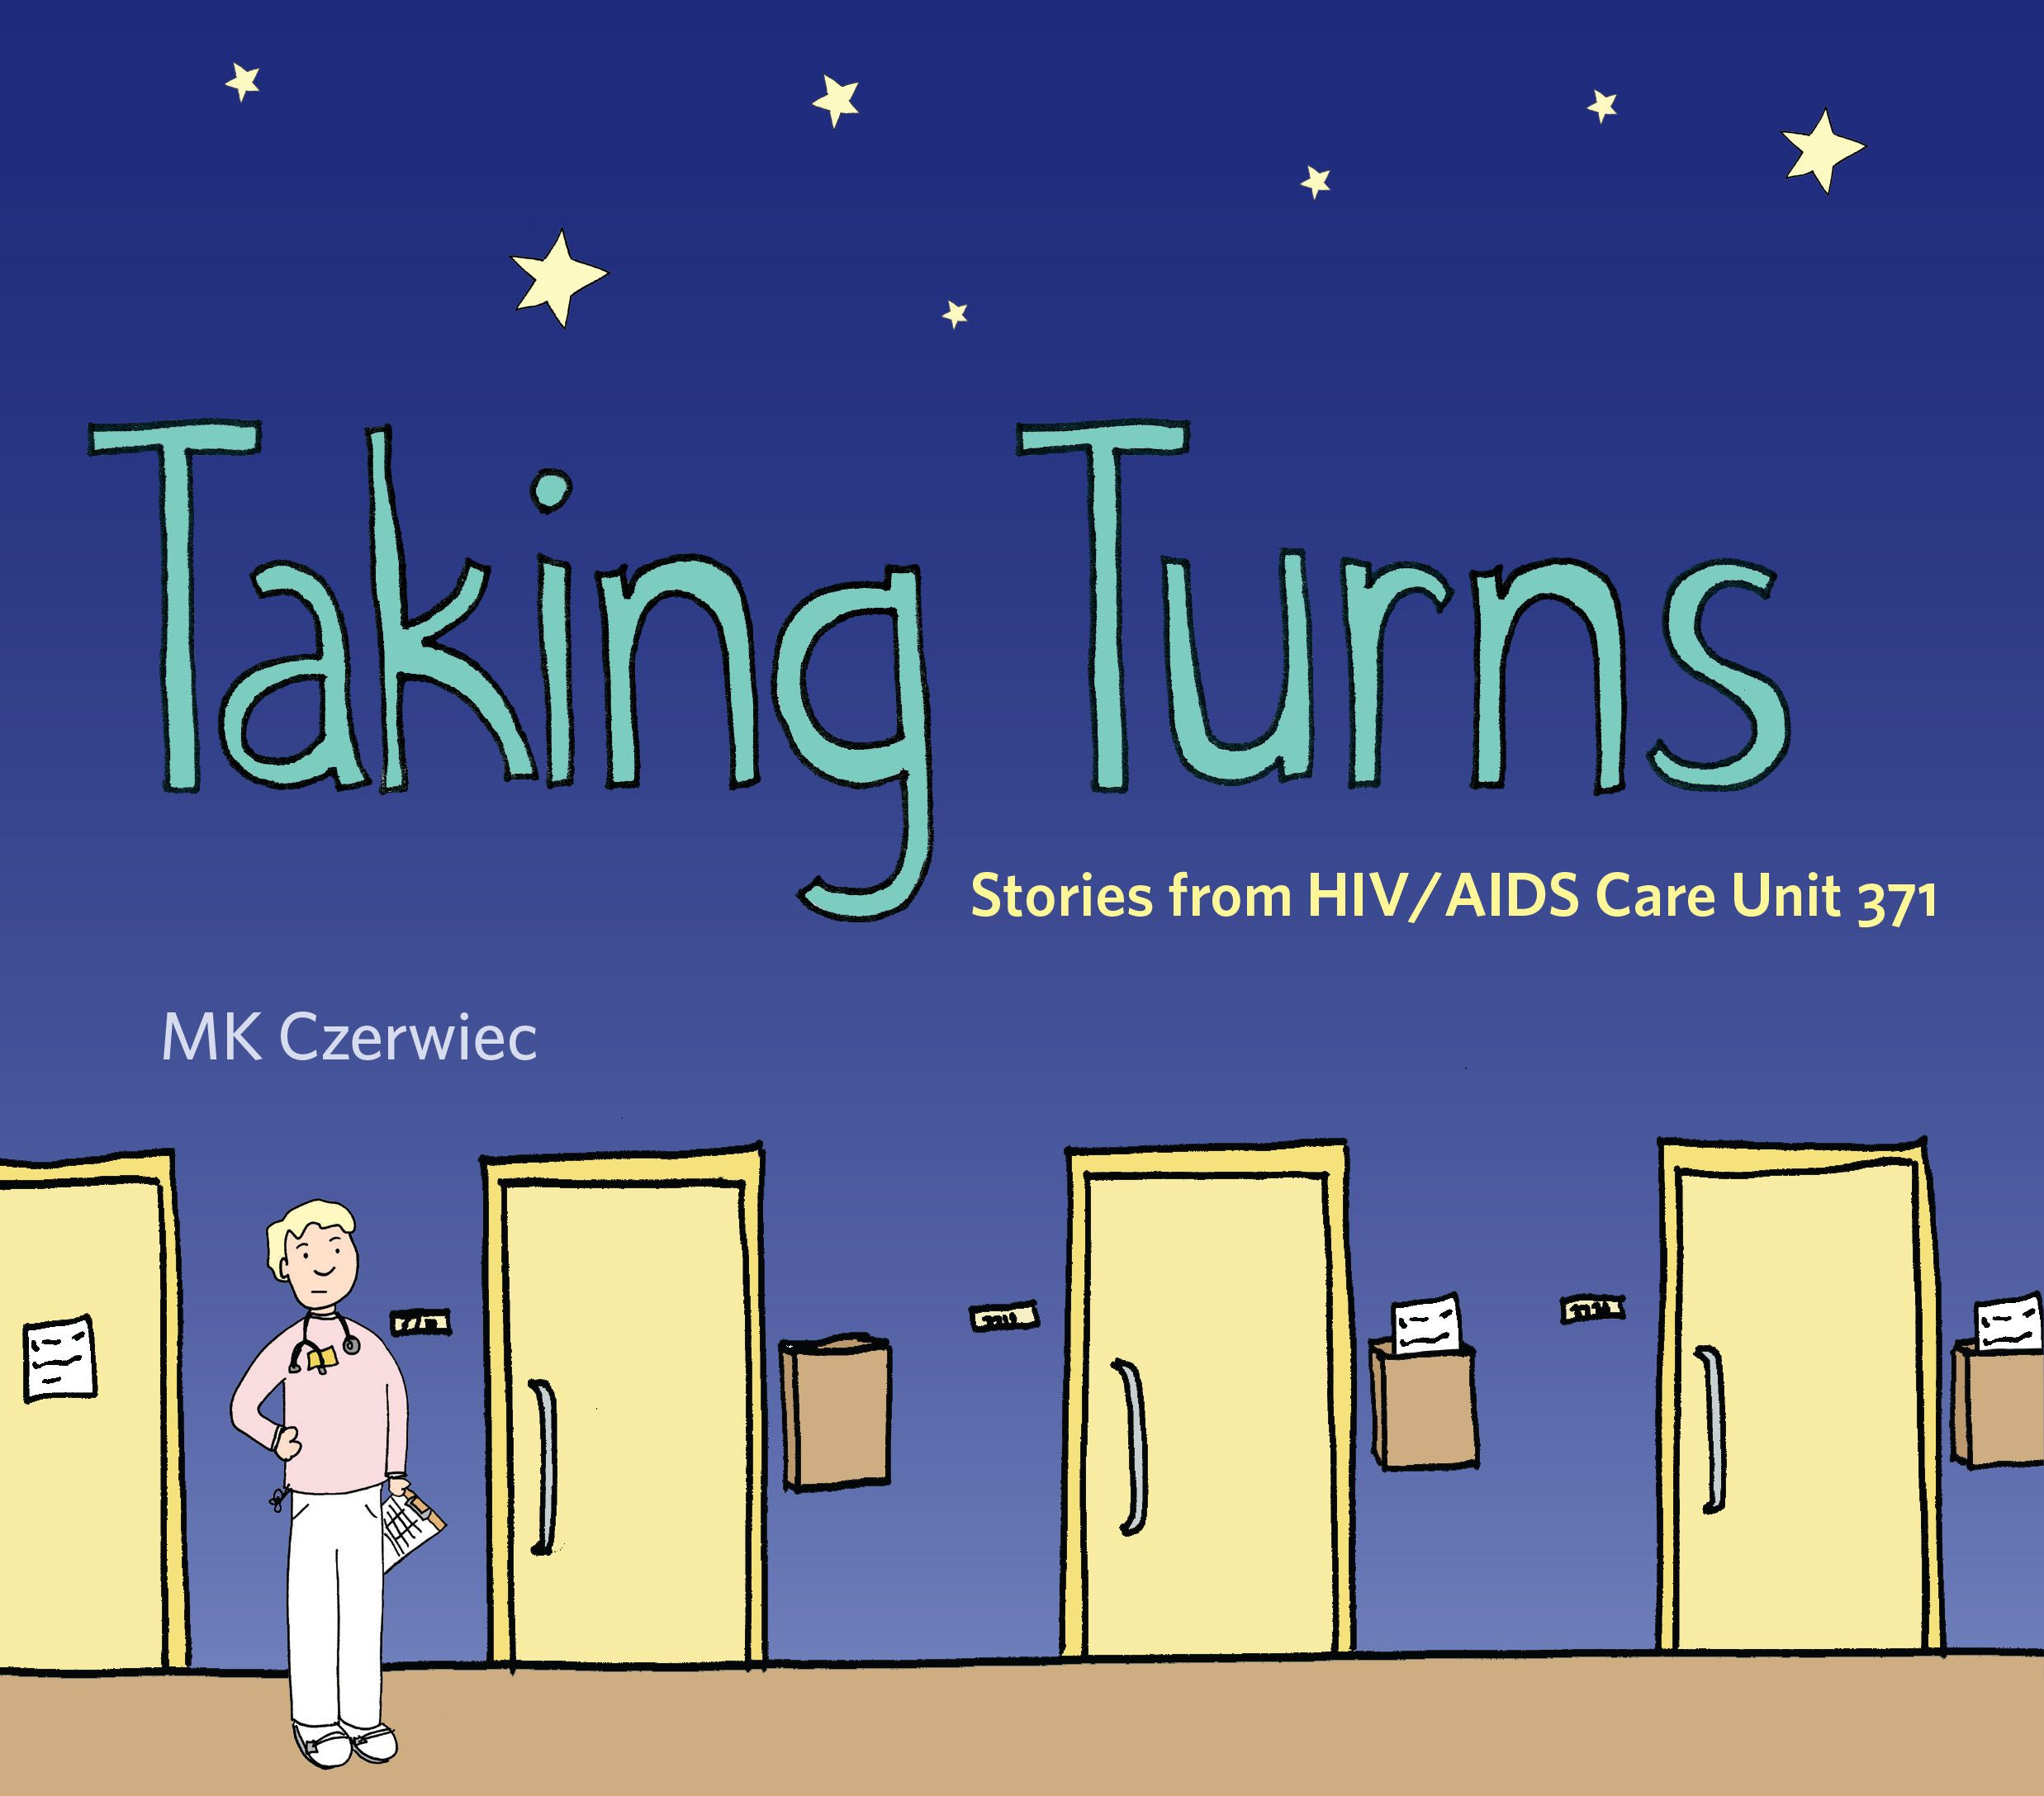 TAKING TURNS: Stories from HIV/AIDS Care Unit 371 | by MK Czerwiec | http://www.psupress.org/books/titles/978-0-271-07818-2.html